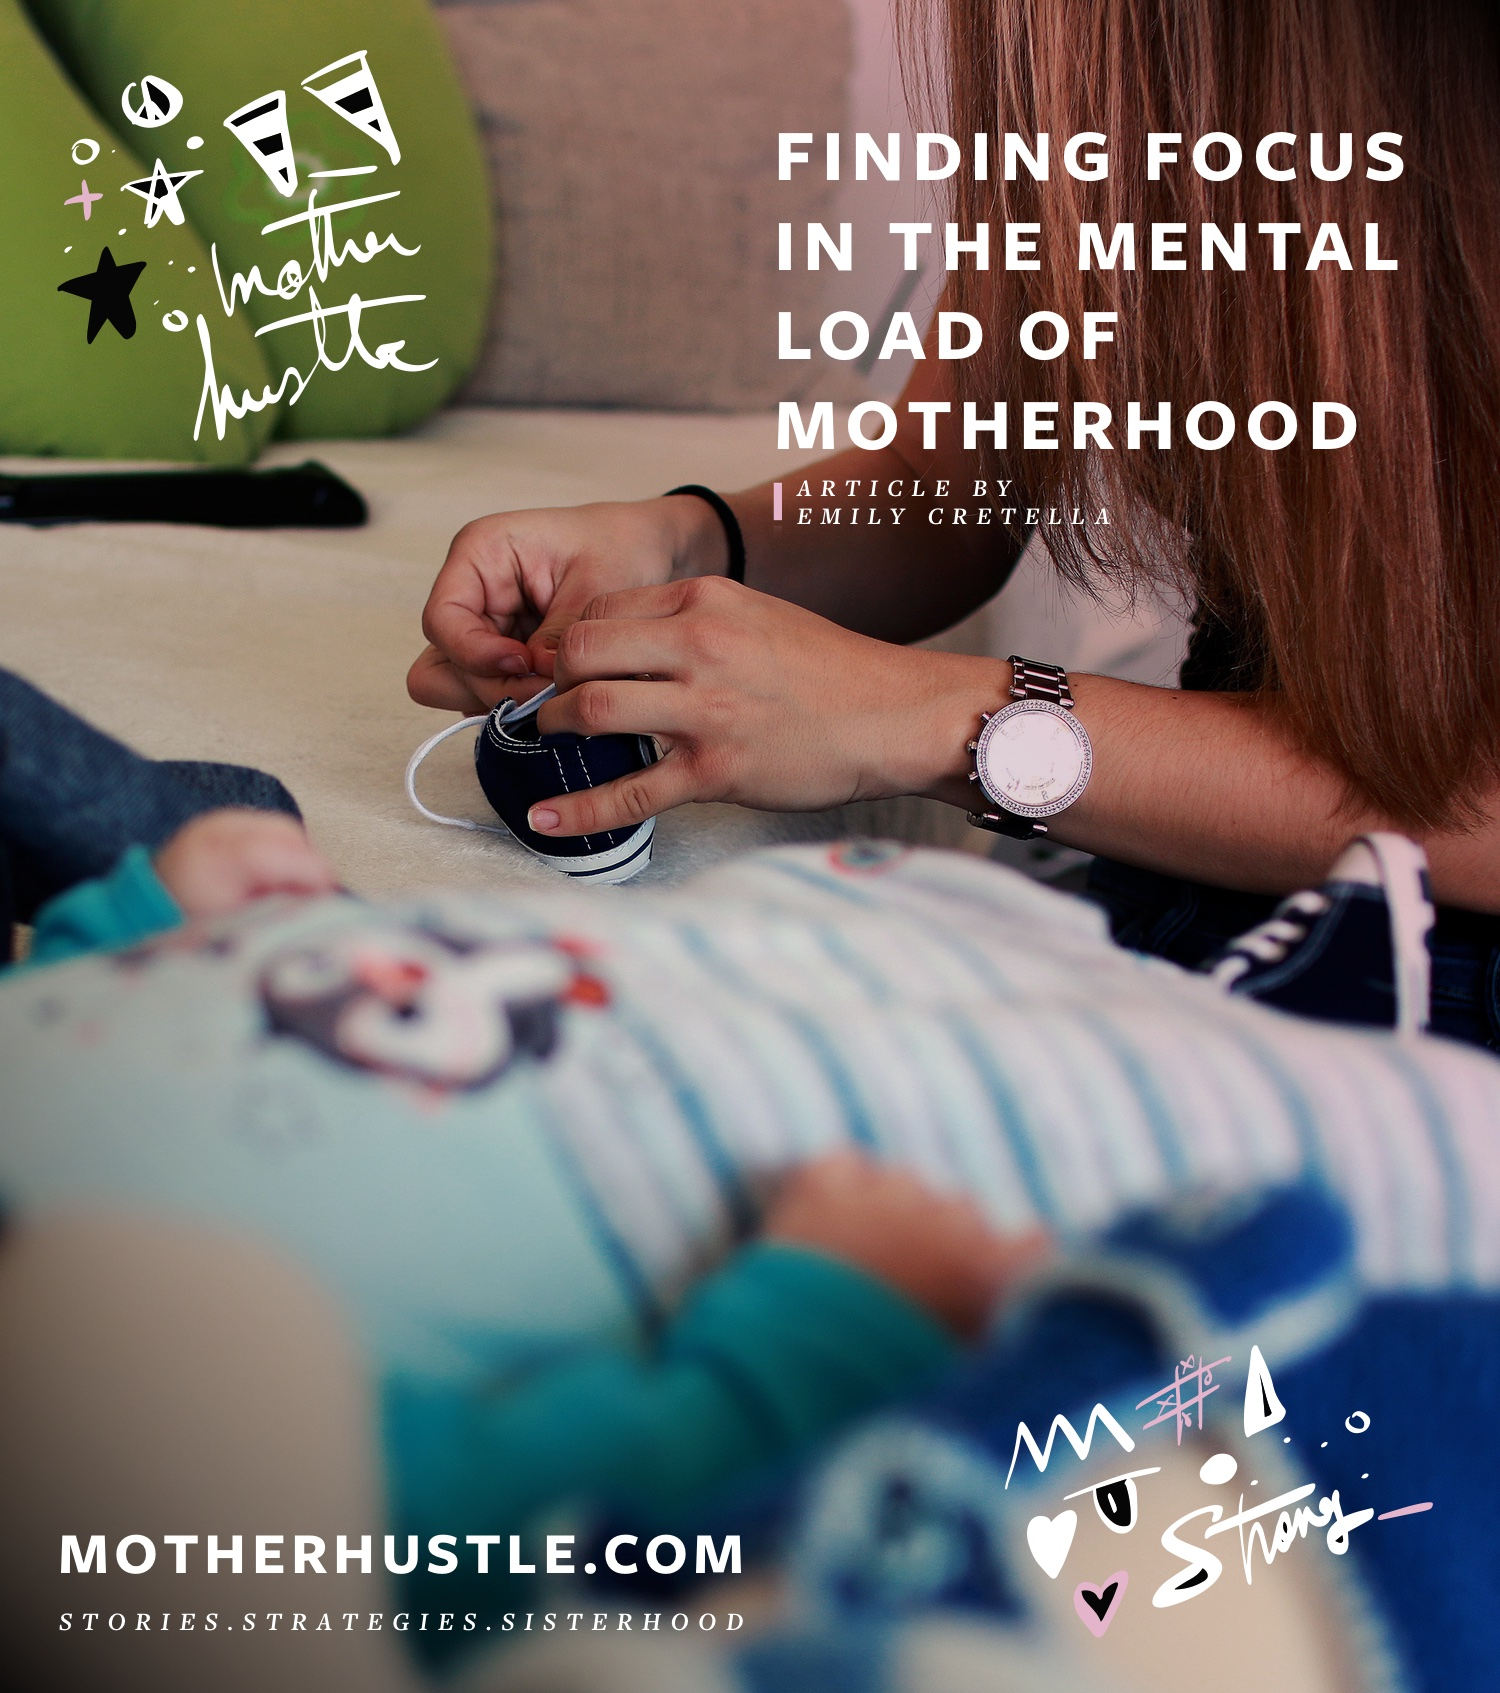 Finding Focus in the Mental Load of Motherhood [November Theme] - by Emily Cretella for MotherHustle